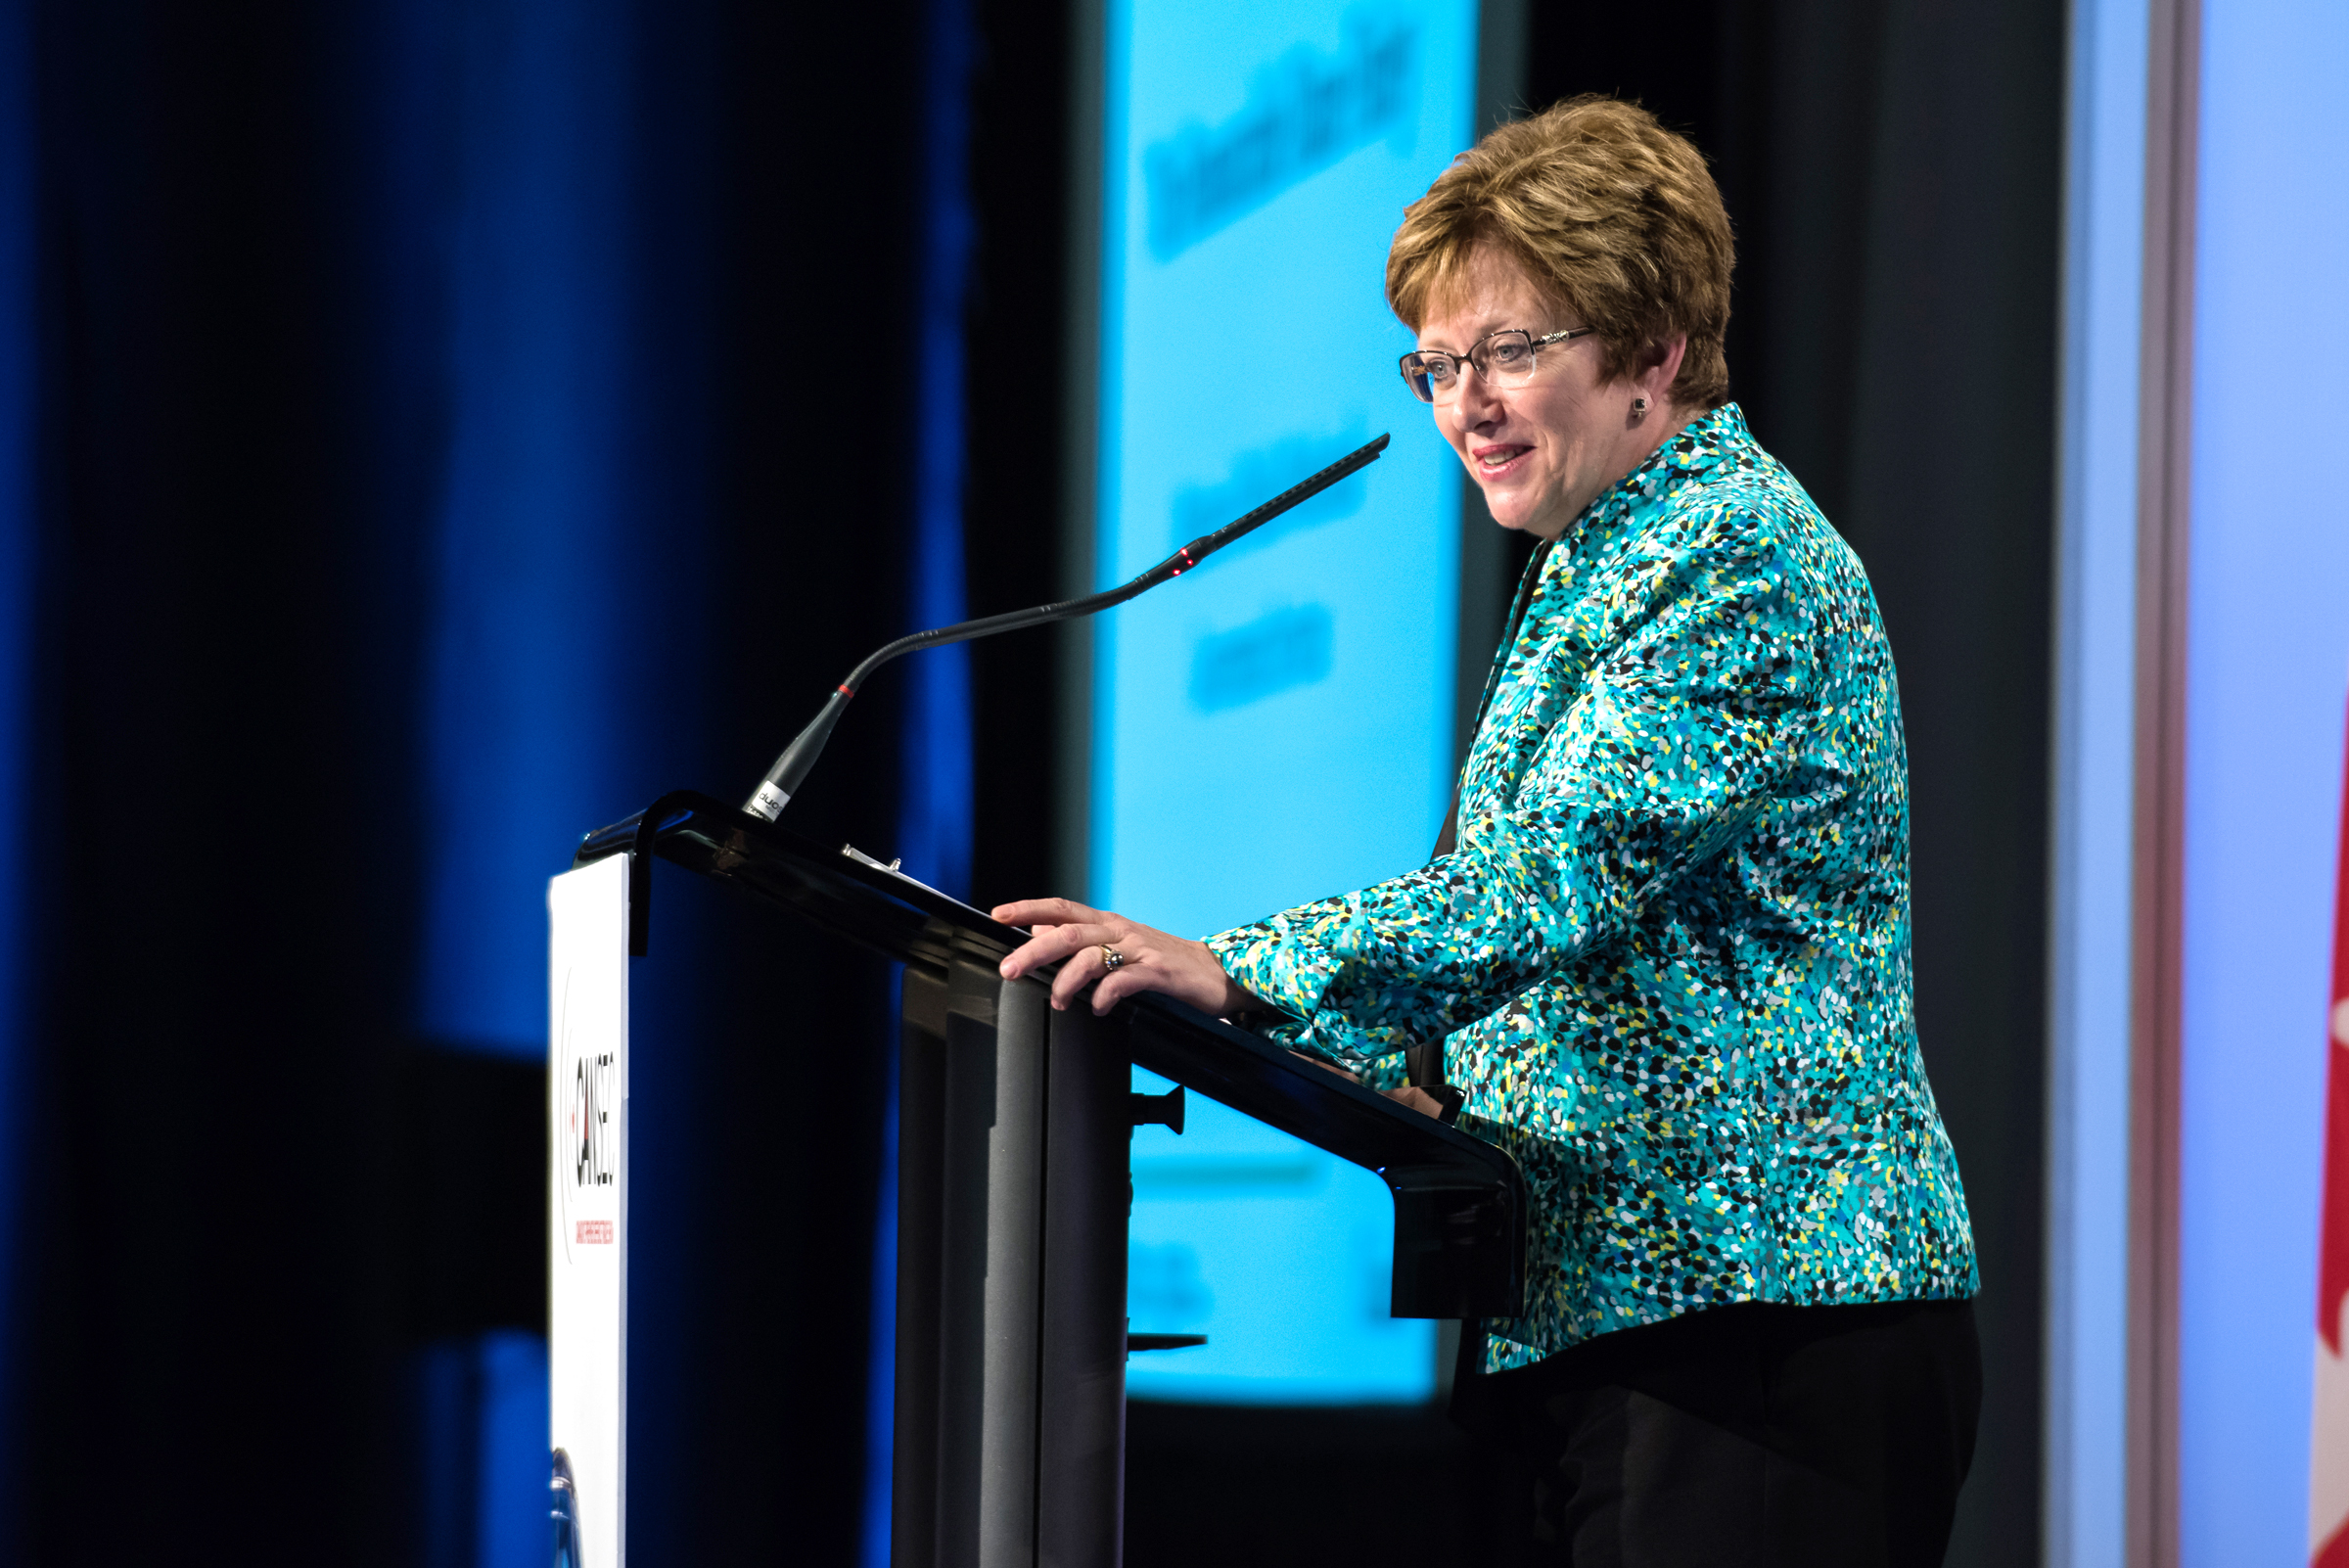 Minister of Public Works and Government Services Diane Finley outlined at the CANSEC 2015 trade show in Ottawa on May 28 the Conservative government's plan to apply the Defence Procurement Strategy to all new procurements. (Richard Lawrence)